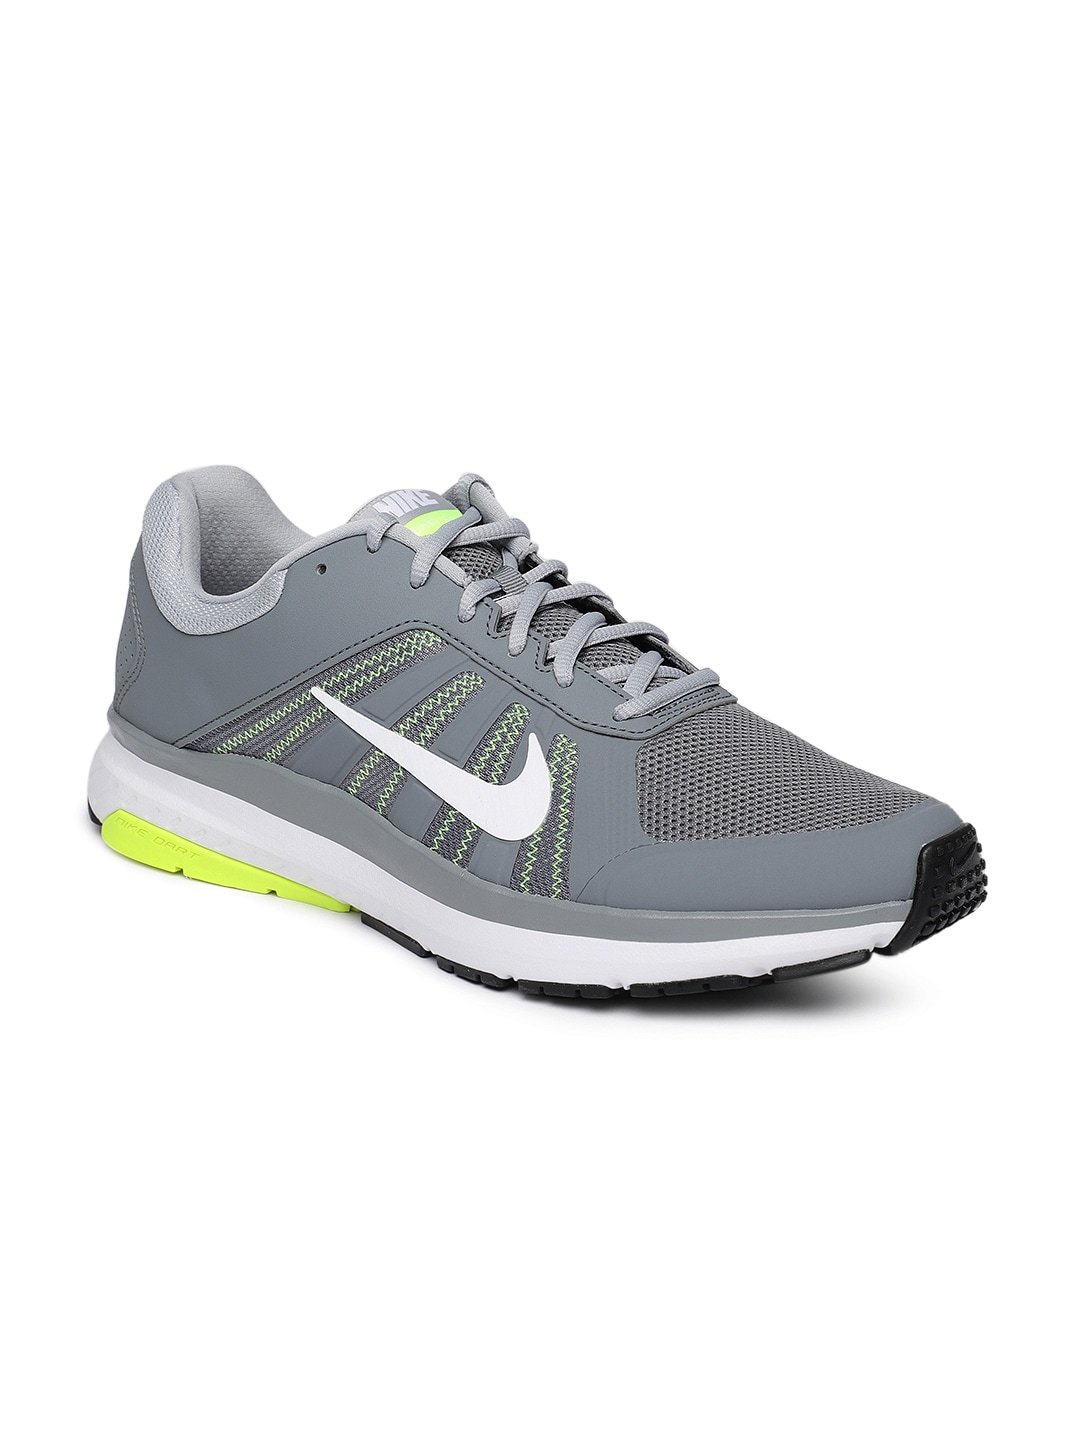 caa6c95edf67 Nike Running Shoes - Buy Nike Running Shoes Online